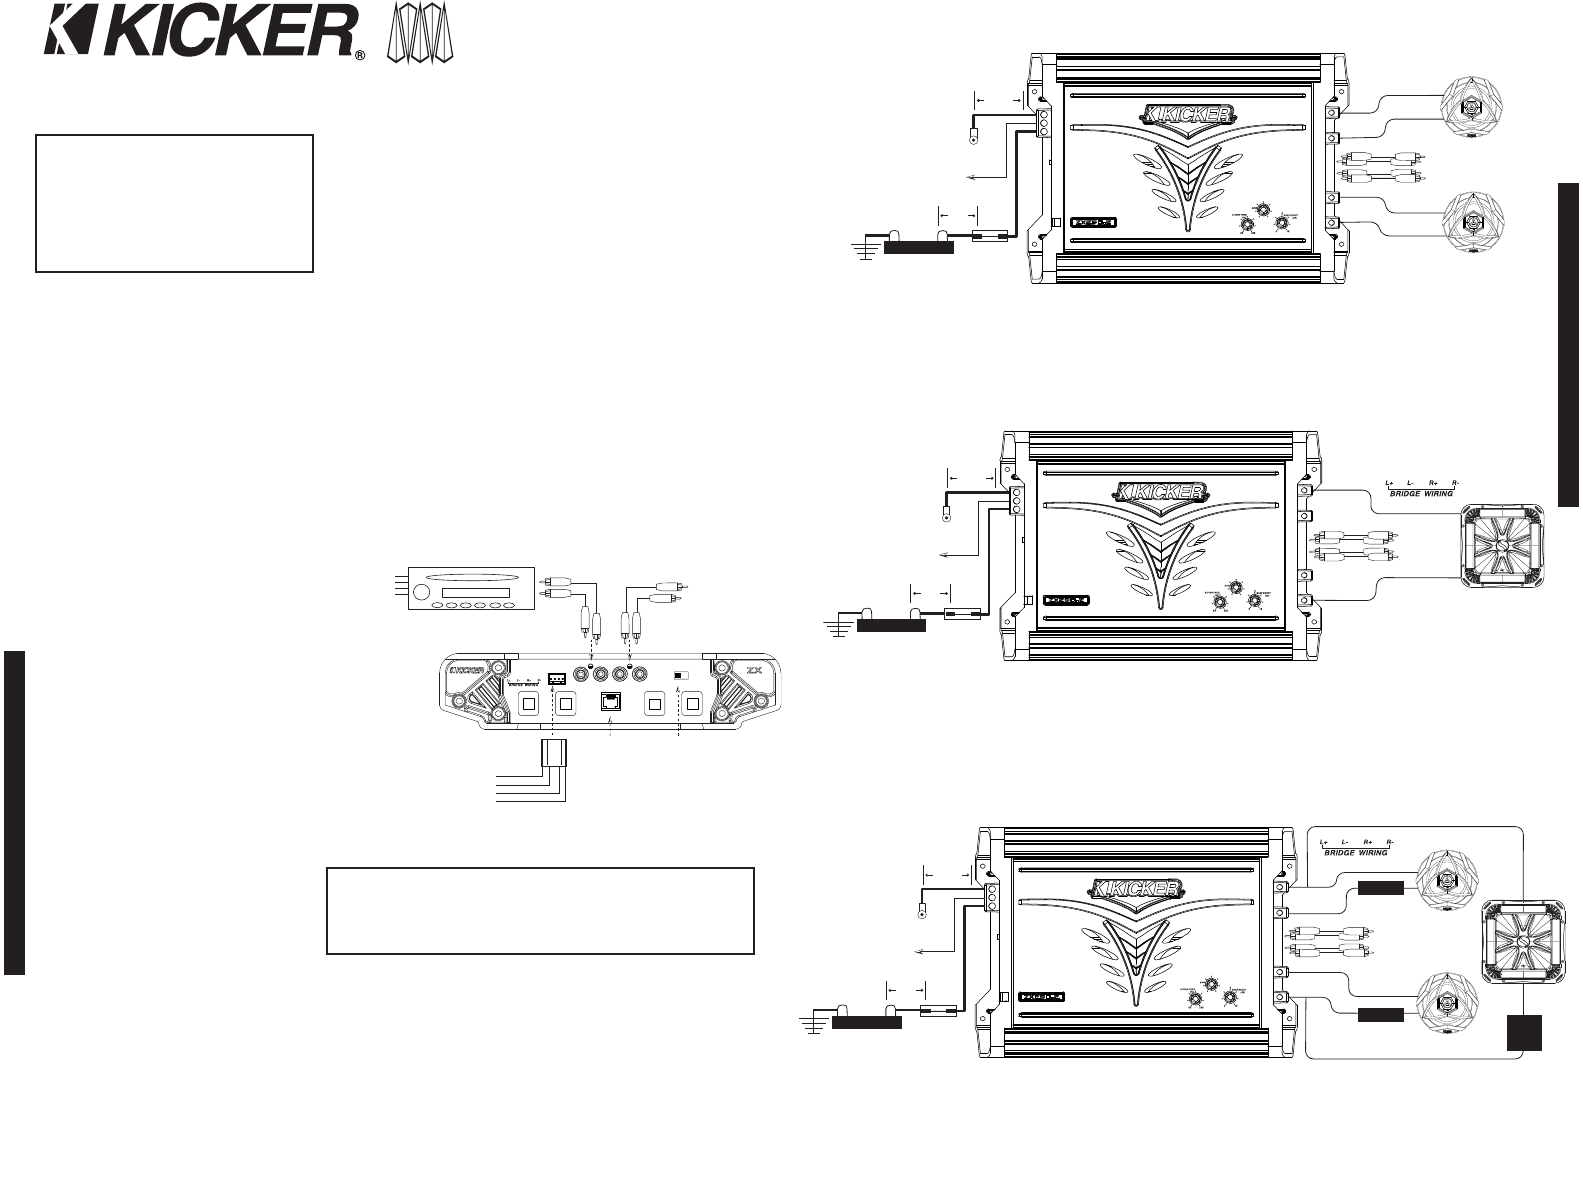 Kicker Cxa 1 Wiring Diagram